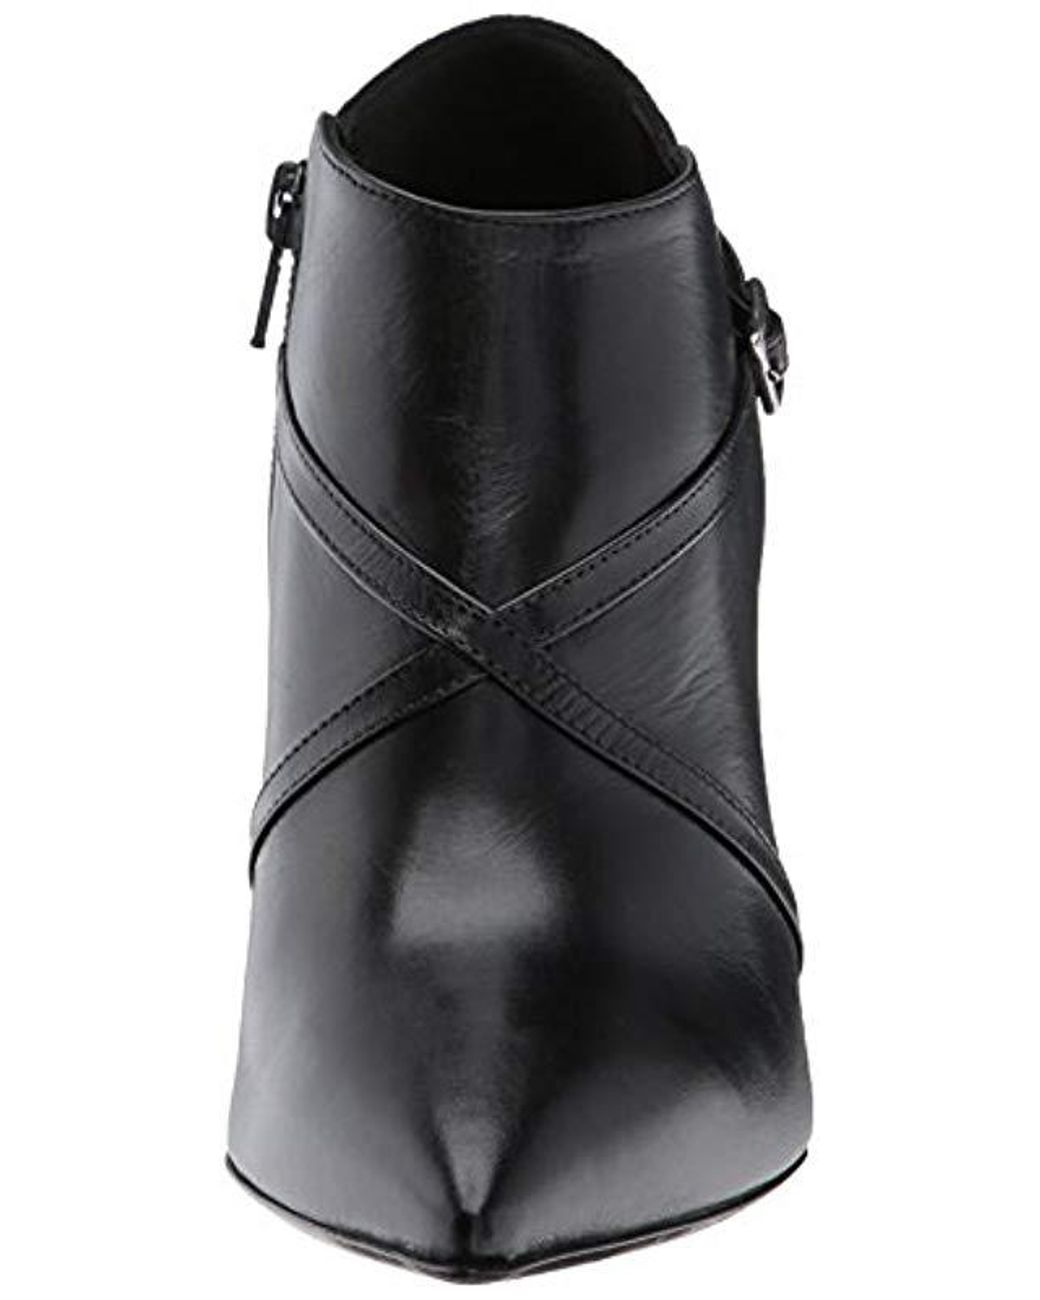 01e383d495ee4 Charles David Laura Ankle Boot in Black - Save 21% - Lyst